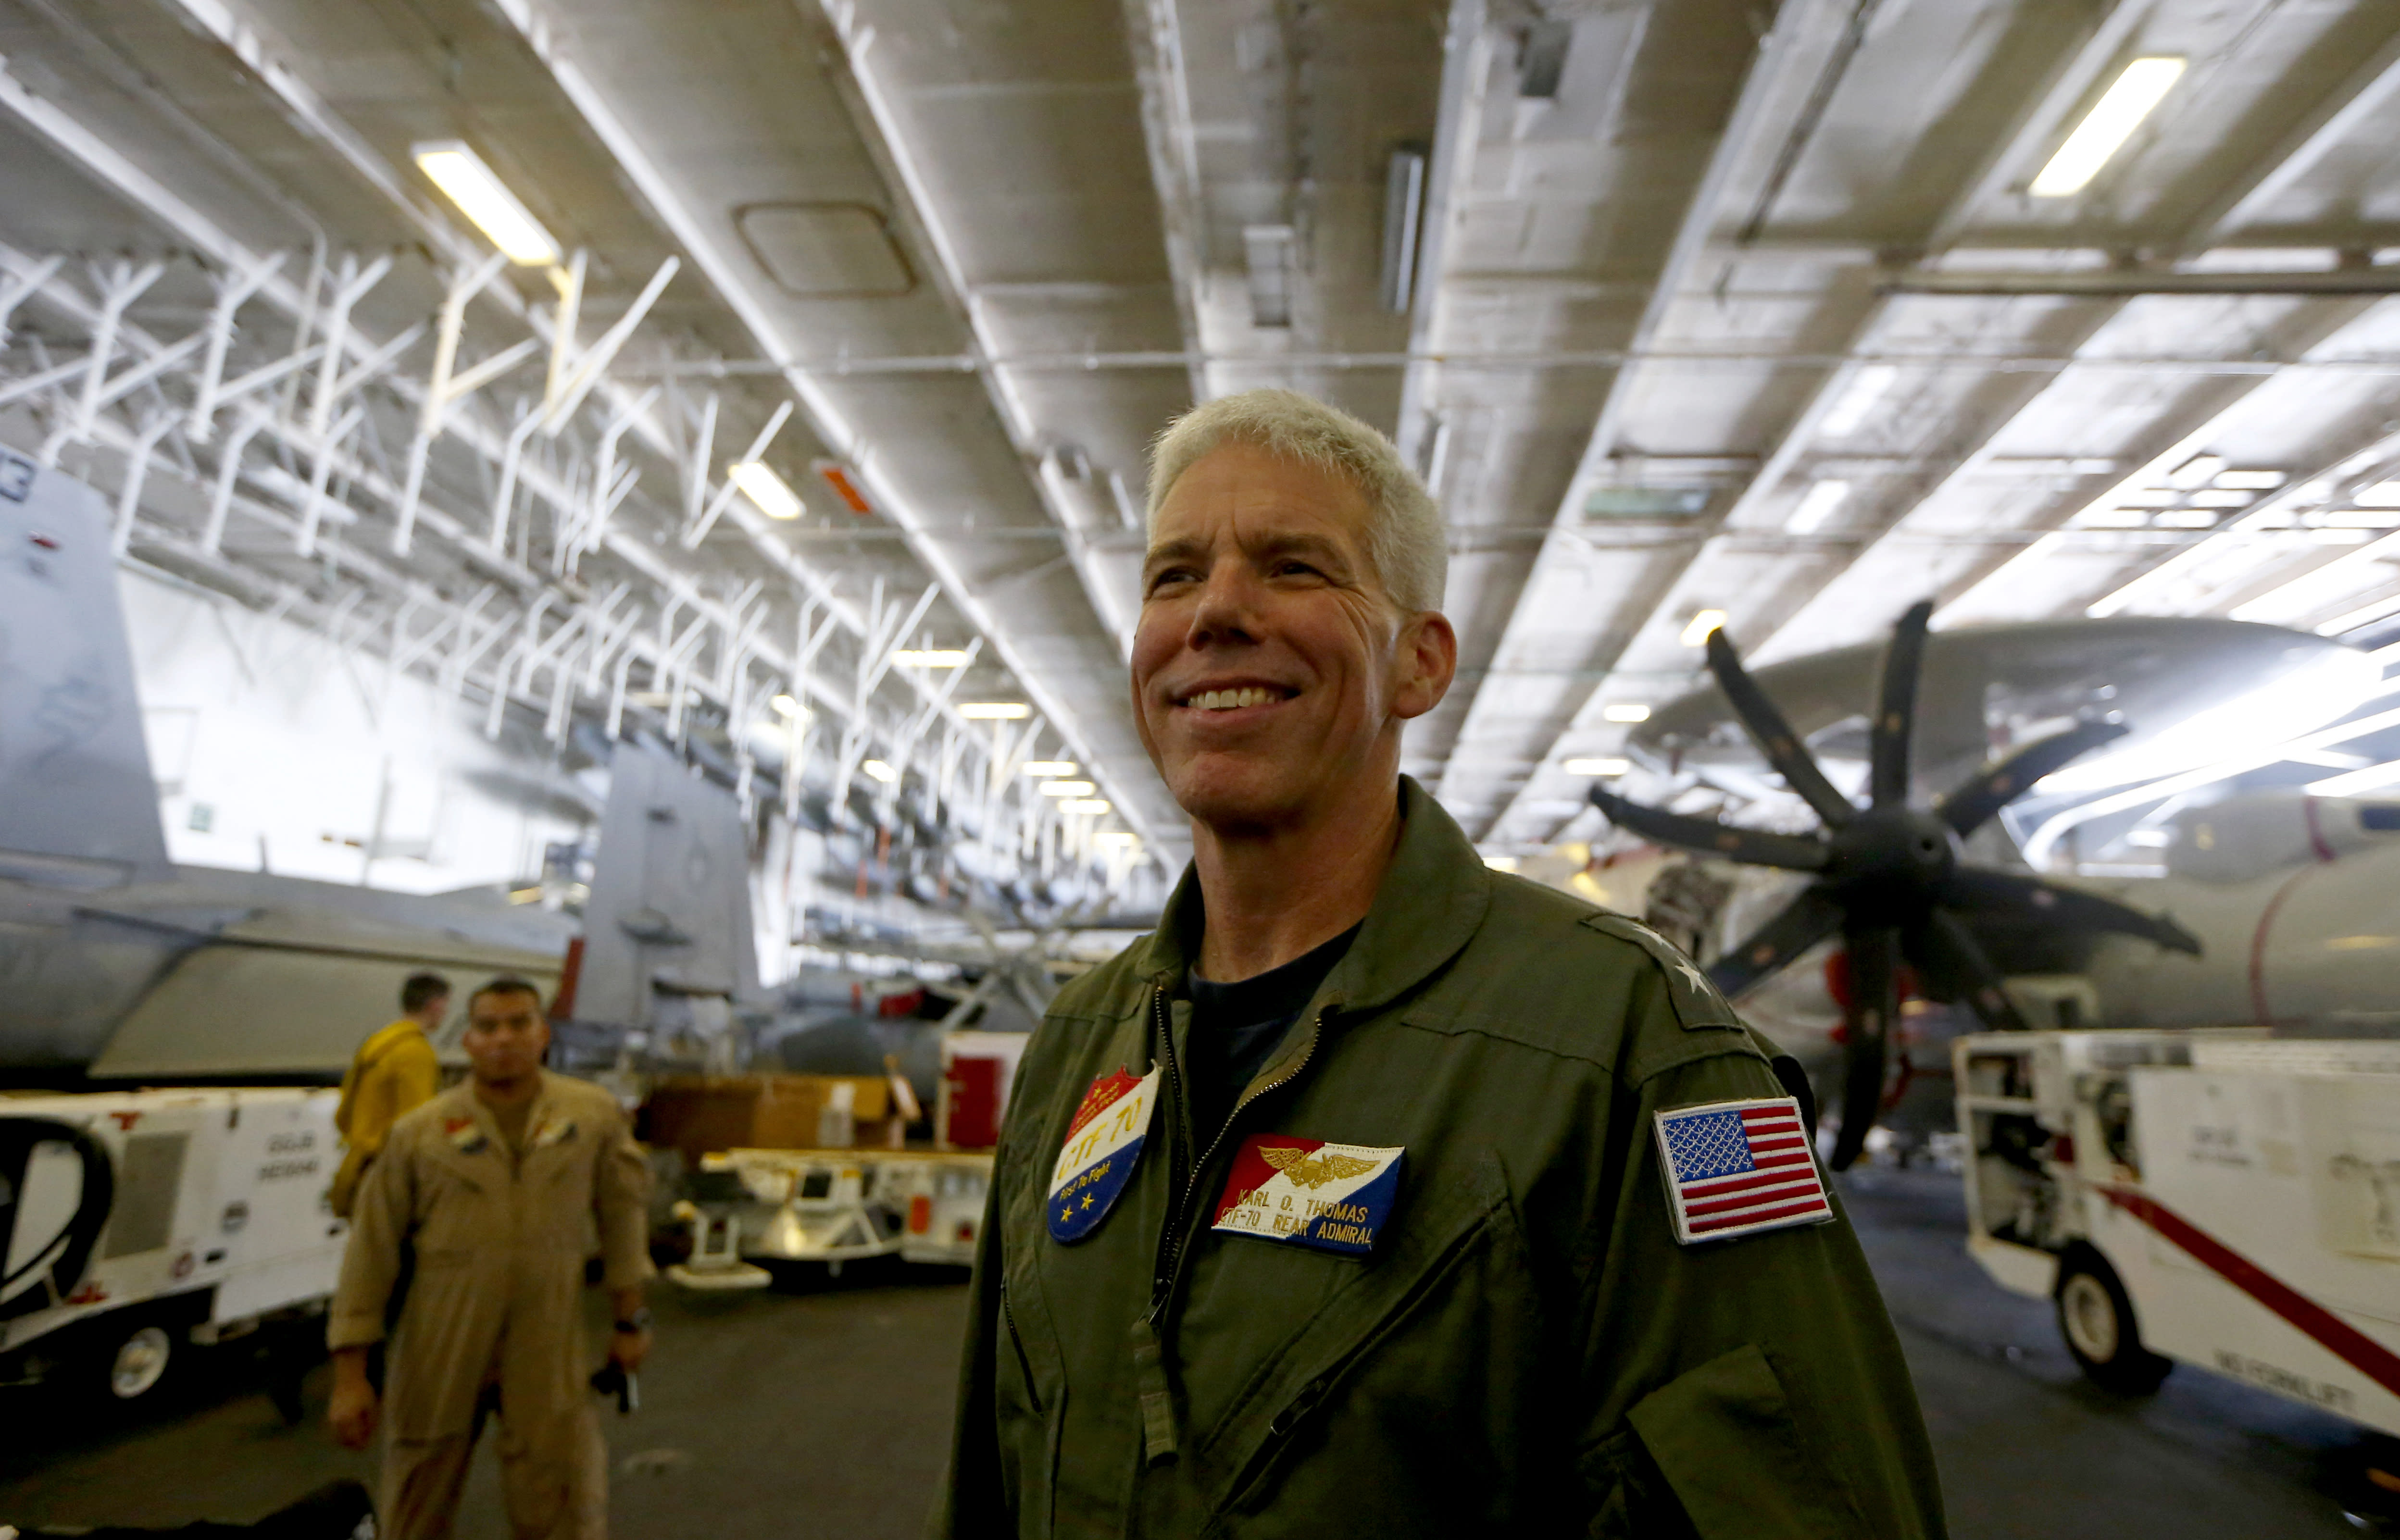 Rear Admiral Karl Thomas, Task Force 70/Commander, Carrier Strike Group 5, poses before an E-2 Hawkeye plane following a media interview aboard the U.S. aircraft carrier USS Ronald Reagan off South China Sea Tuesday, Aug. 6, 2019, west of the Philippines. The USS Ronald Reagan is cruising in international waters in the South China Sea amid tensions in the disputed islands, shoals and reefs between China and other claimant-countries as Philippines, Vietnam and Malaysia. (AP Photo/Bullit Marquez)